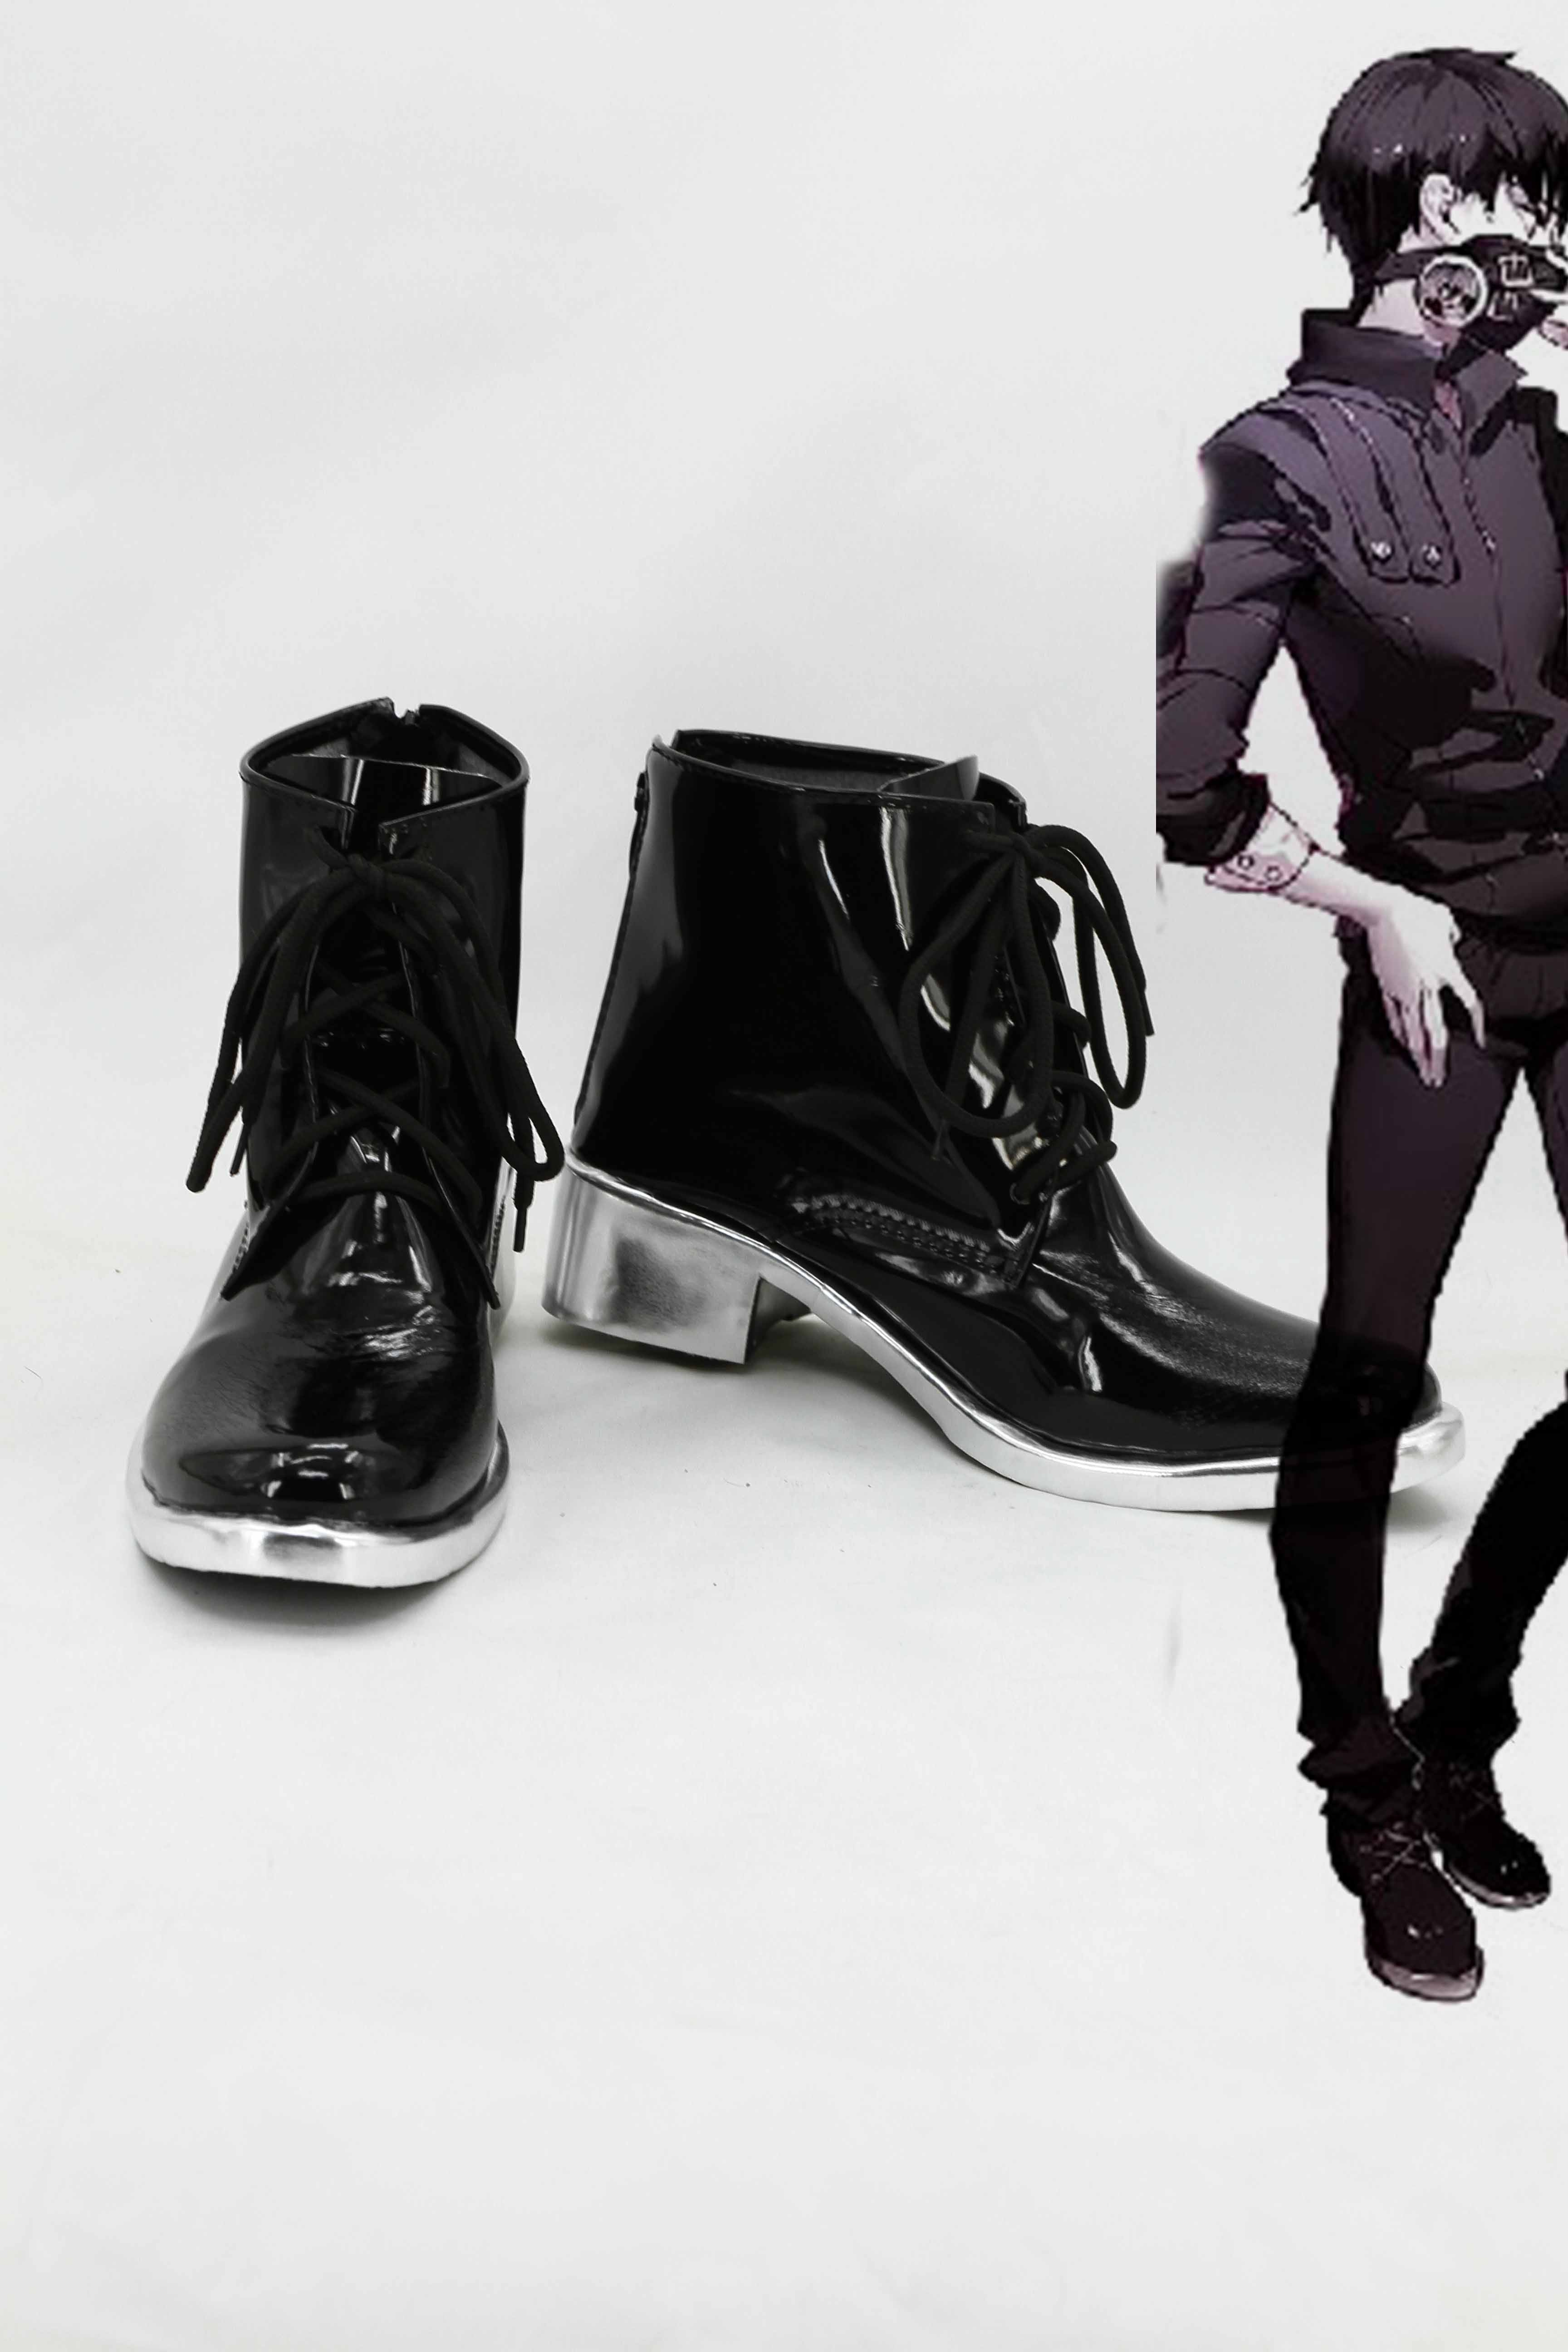 Tokyo Ghoul Kaneki Ken Cosplay Boots For Costume From Tokyo Ghoul